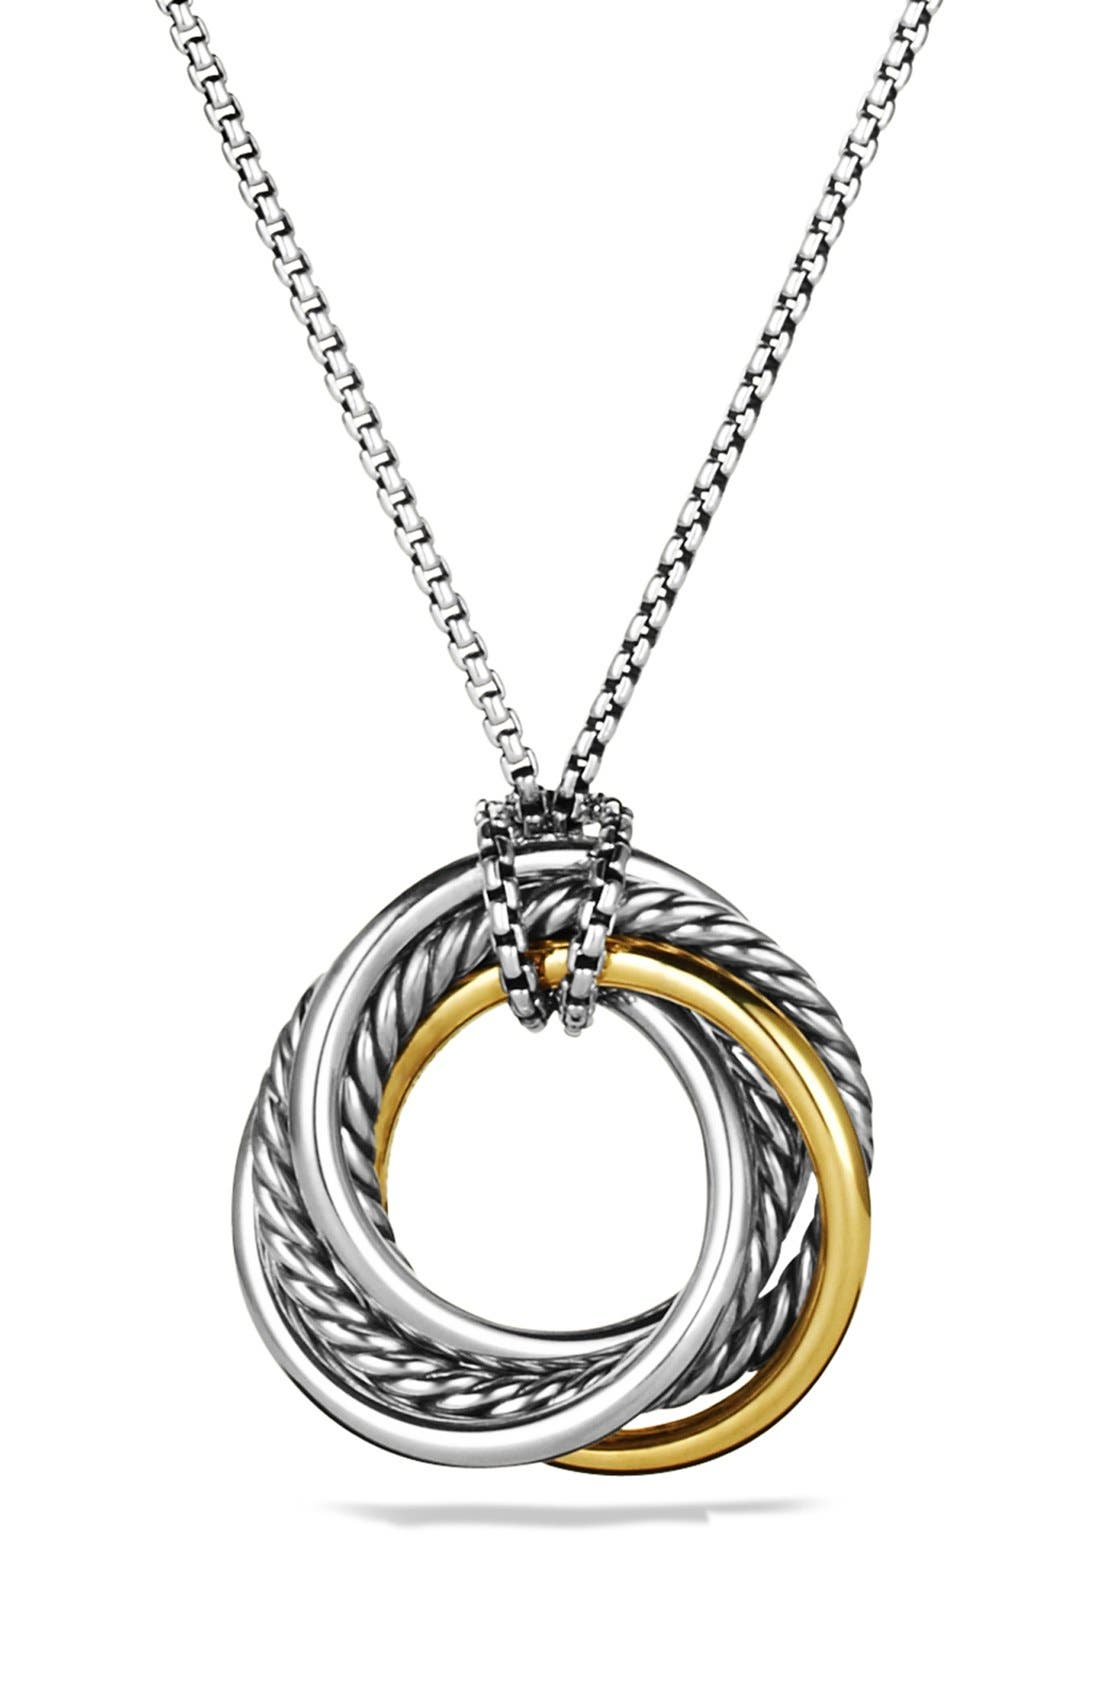 'Crossover' Small Pendant with Gold on Chain,                             Main thumbnail 1, color,                             TWO TONE